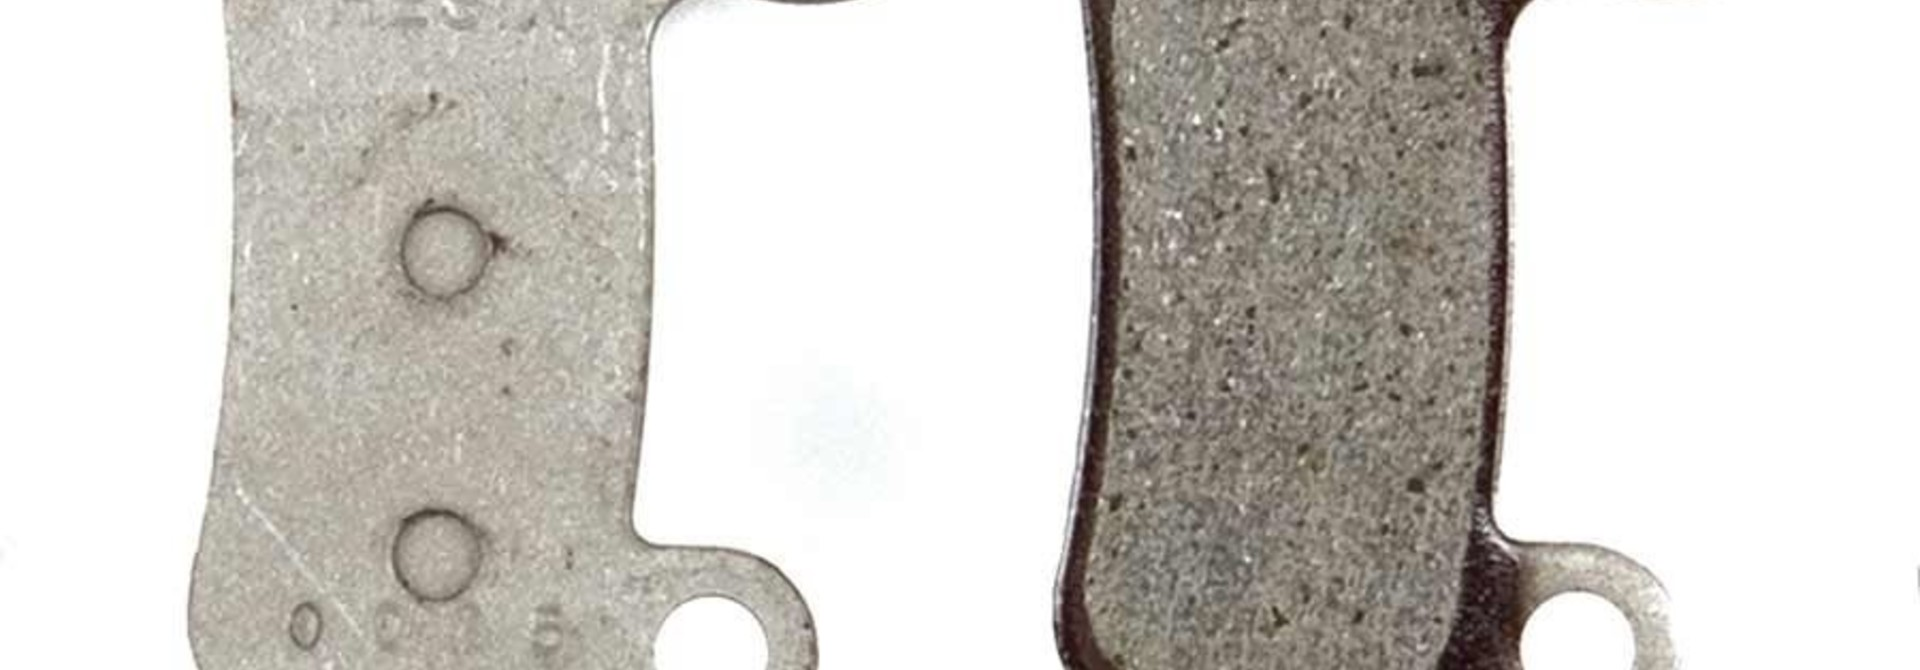 Shimano, A01S, BR-M775, Disc brake pads, Resin, Pair, A type